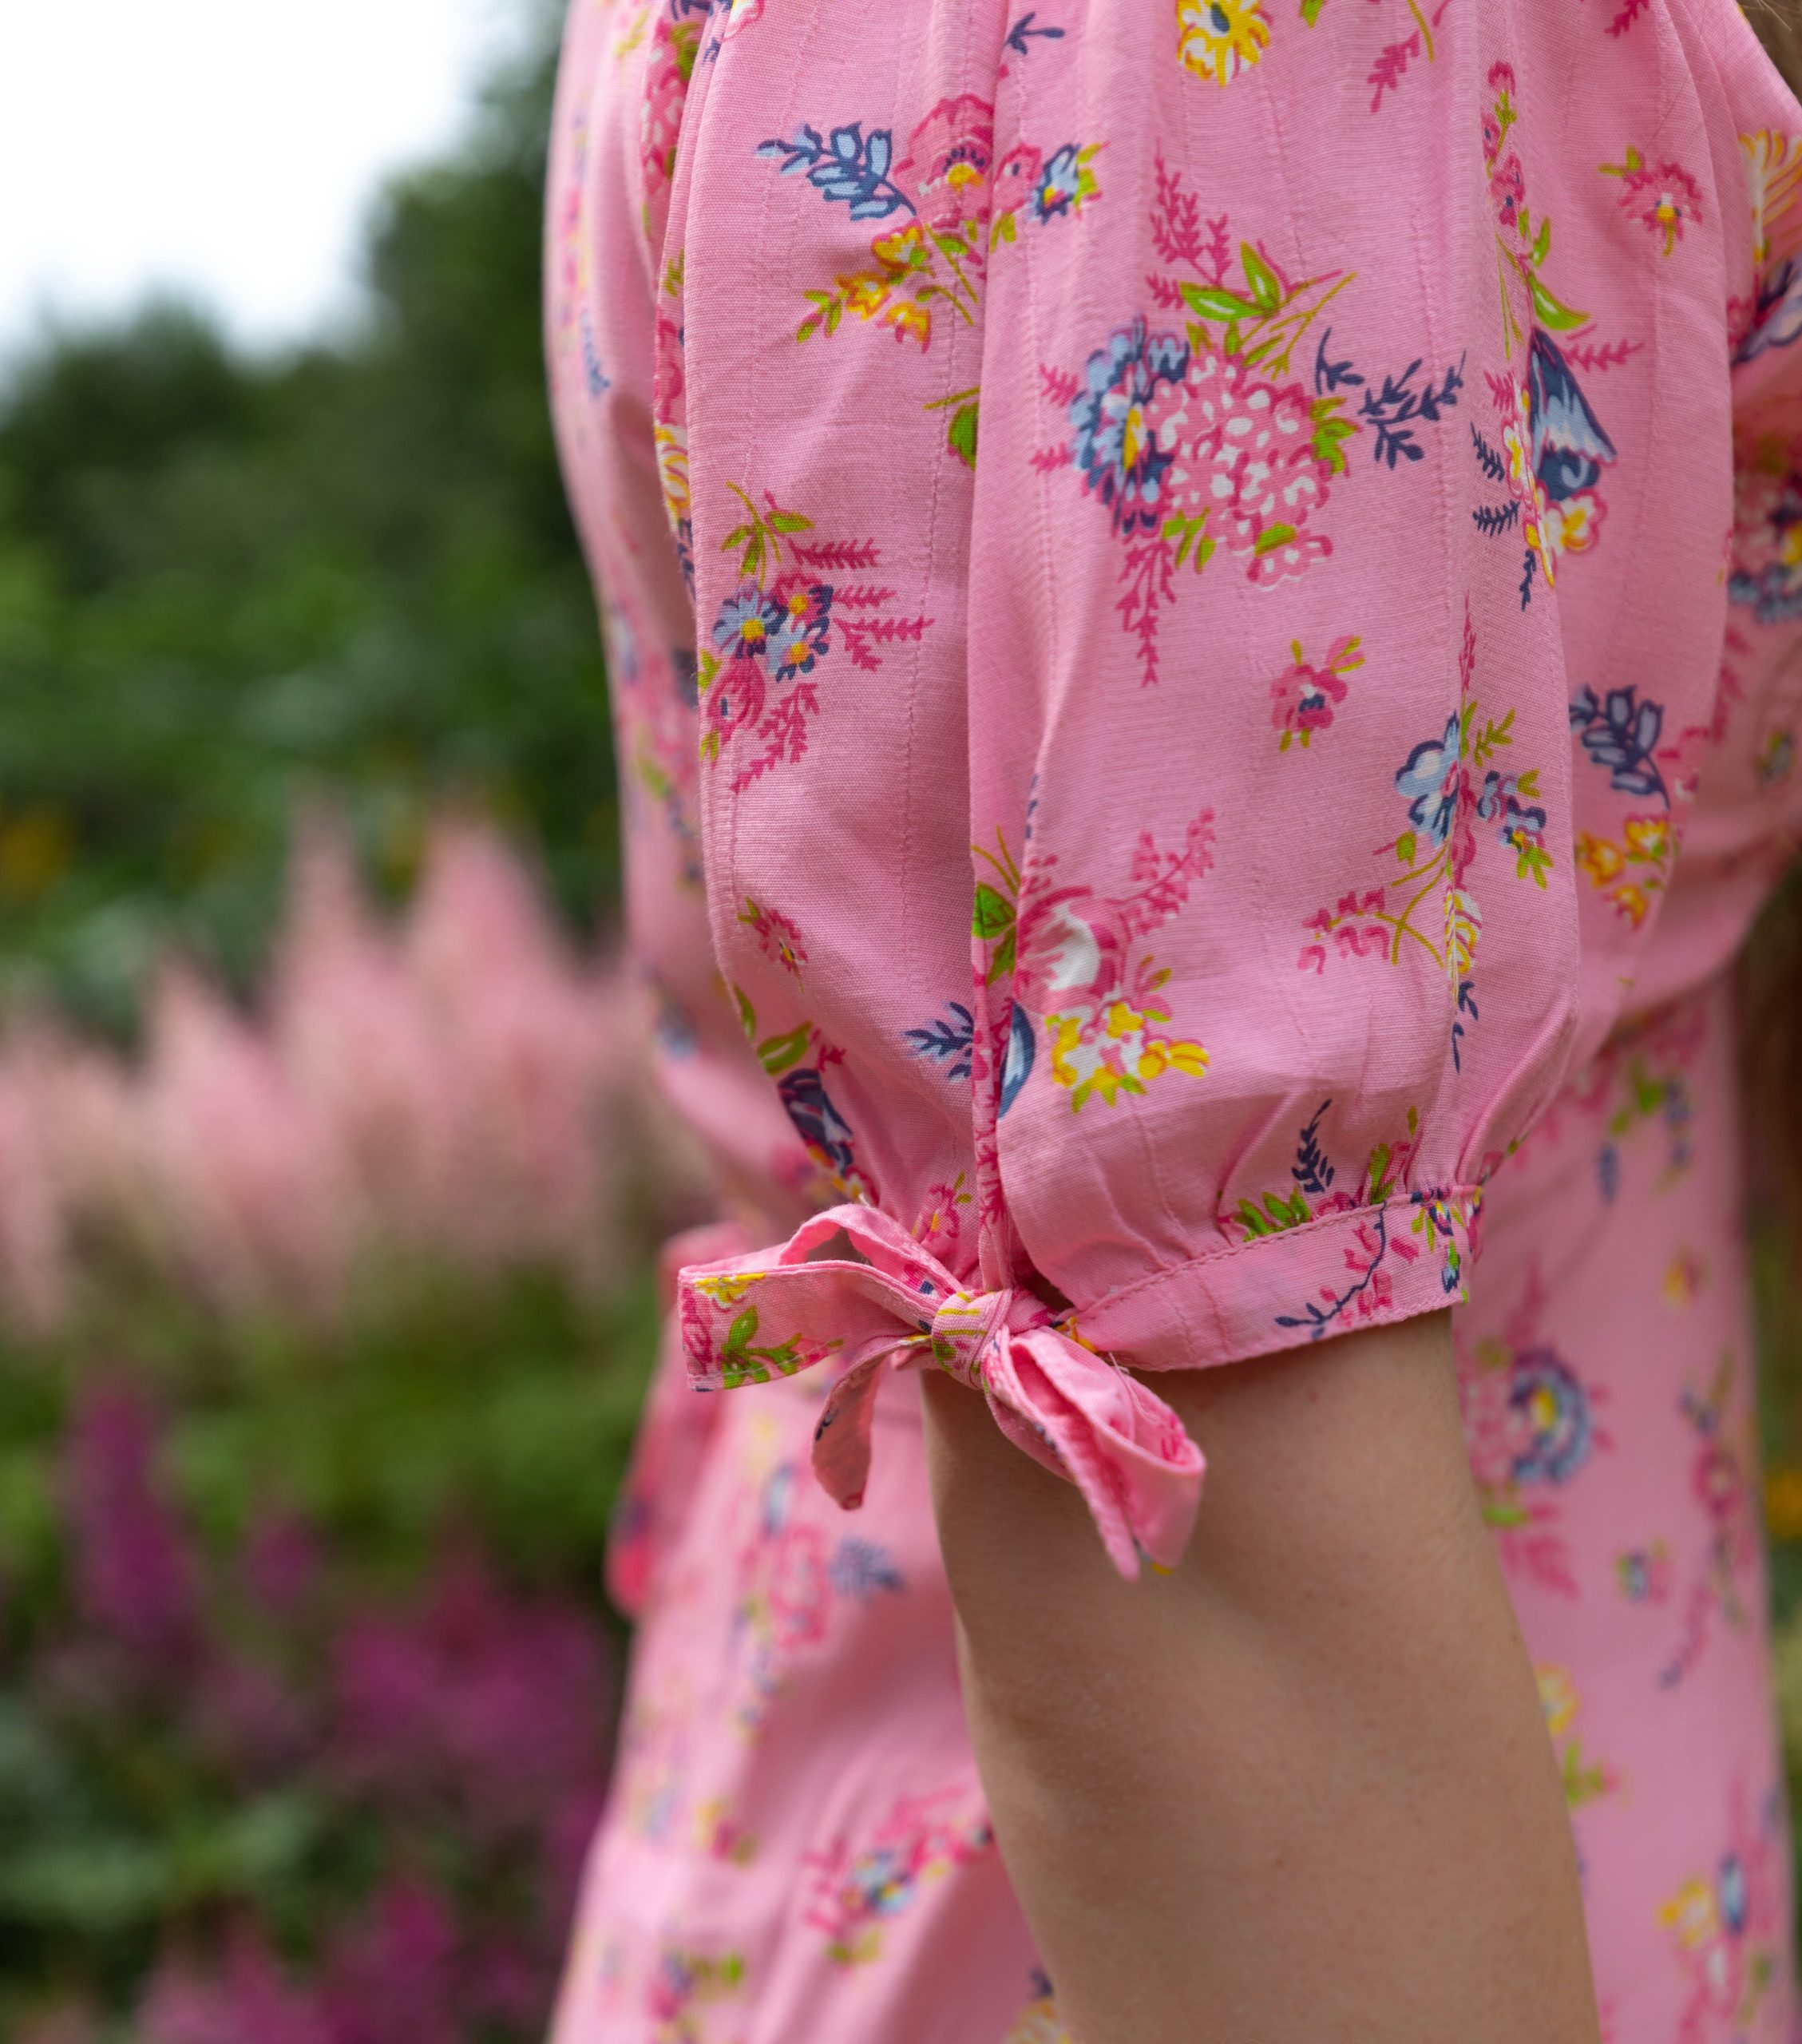 Faithful The Brand Pink Floral Daija Midi Dress Worn by Annie Fairfax